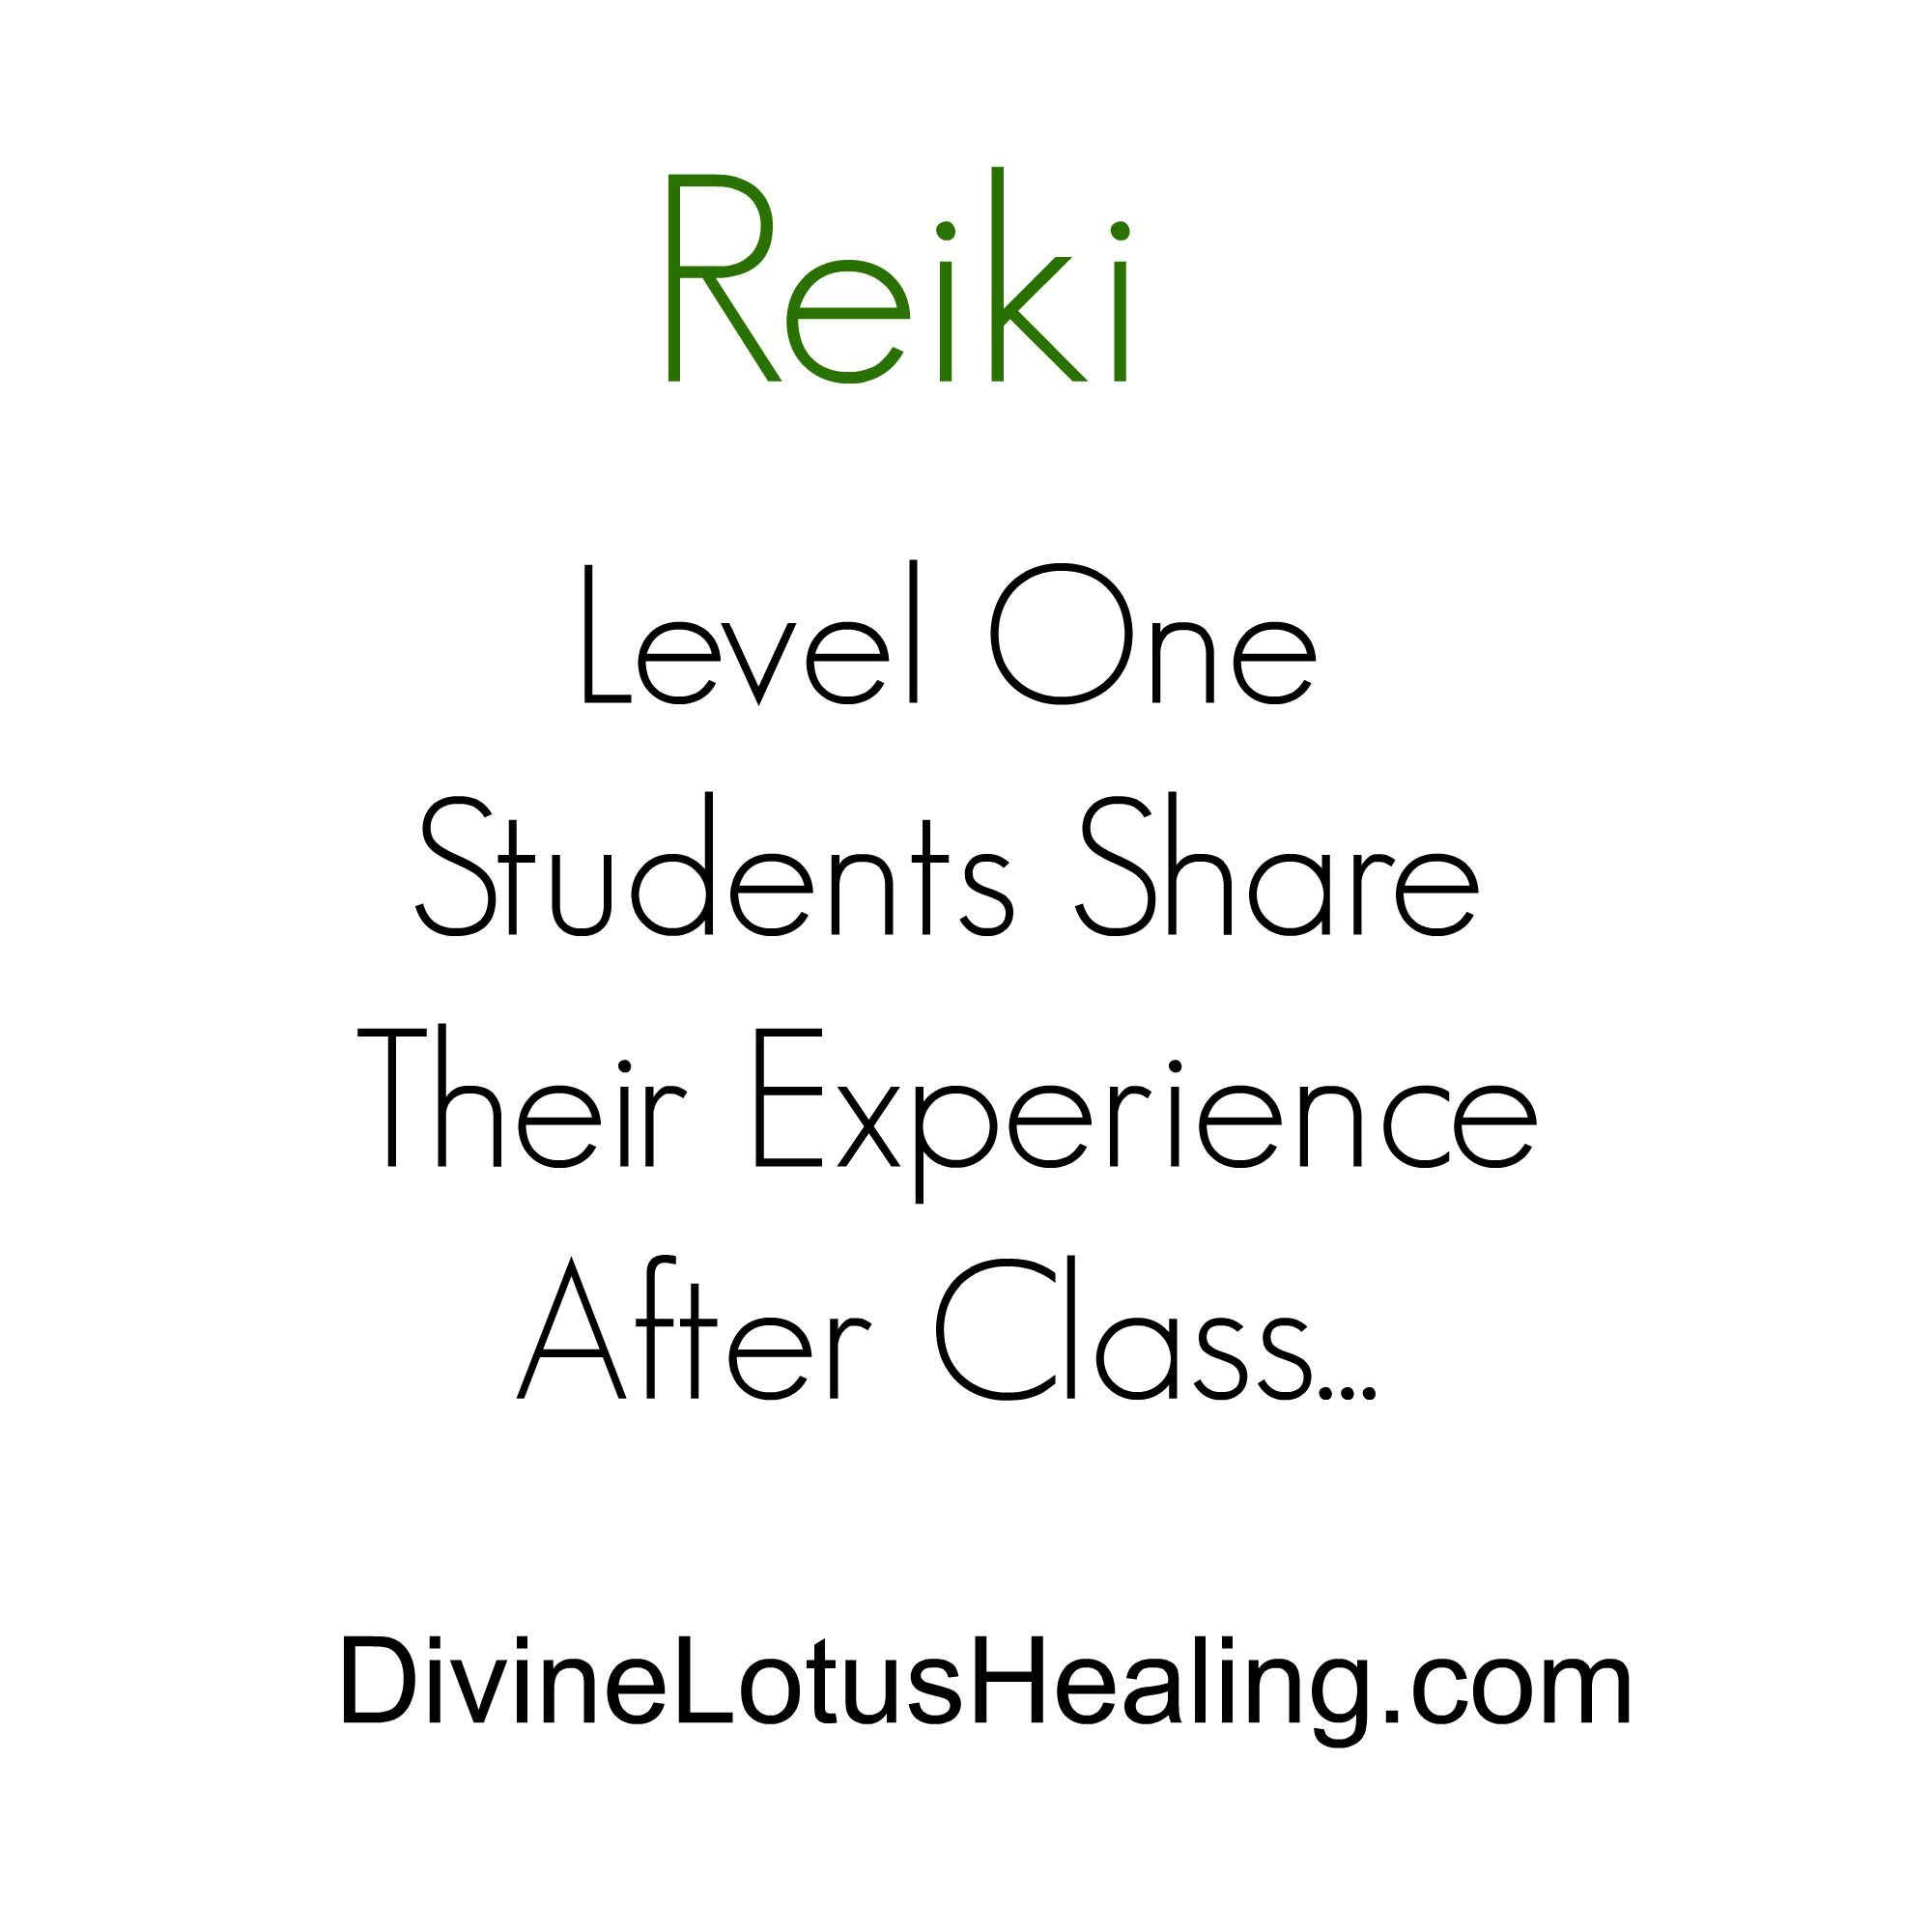 Divine Lotus Healing | Reiki Level One Students Share Their Experience After Class